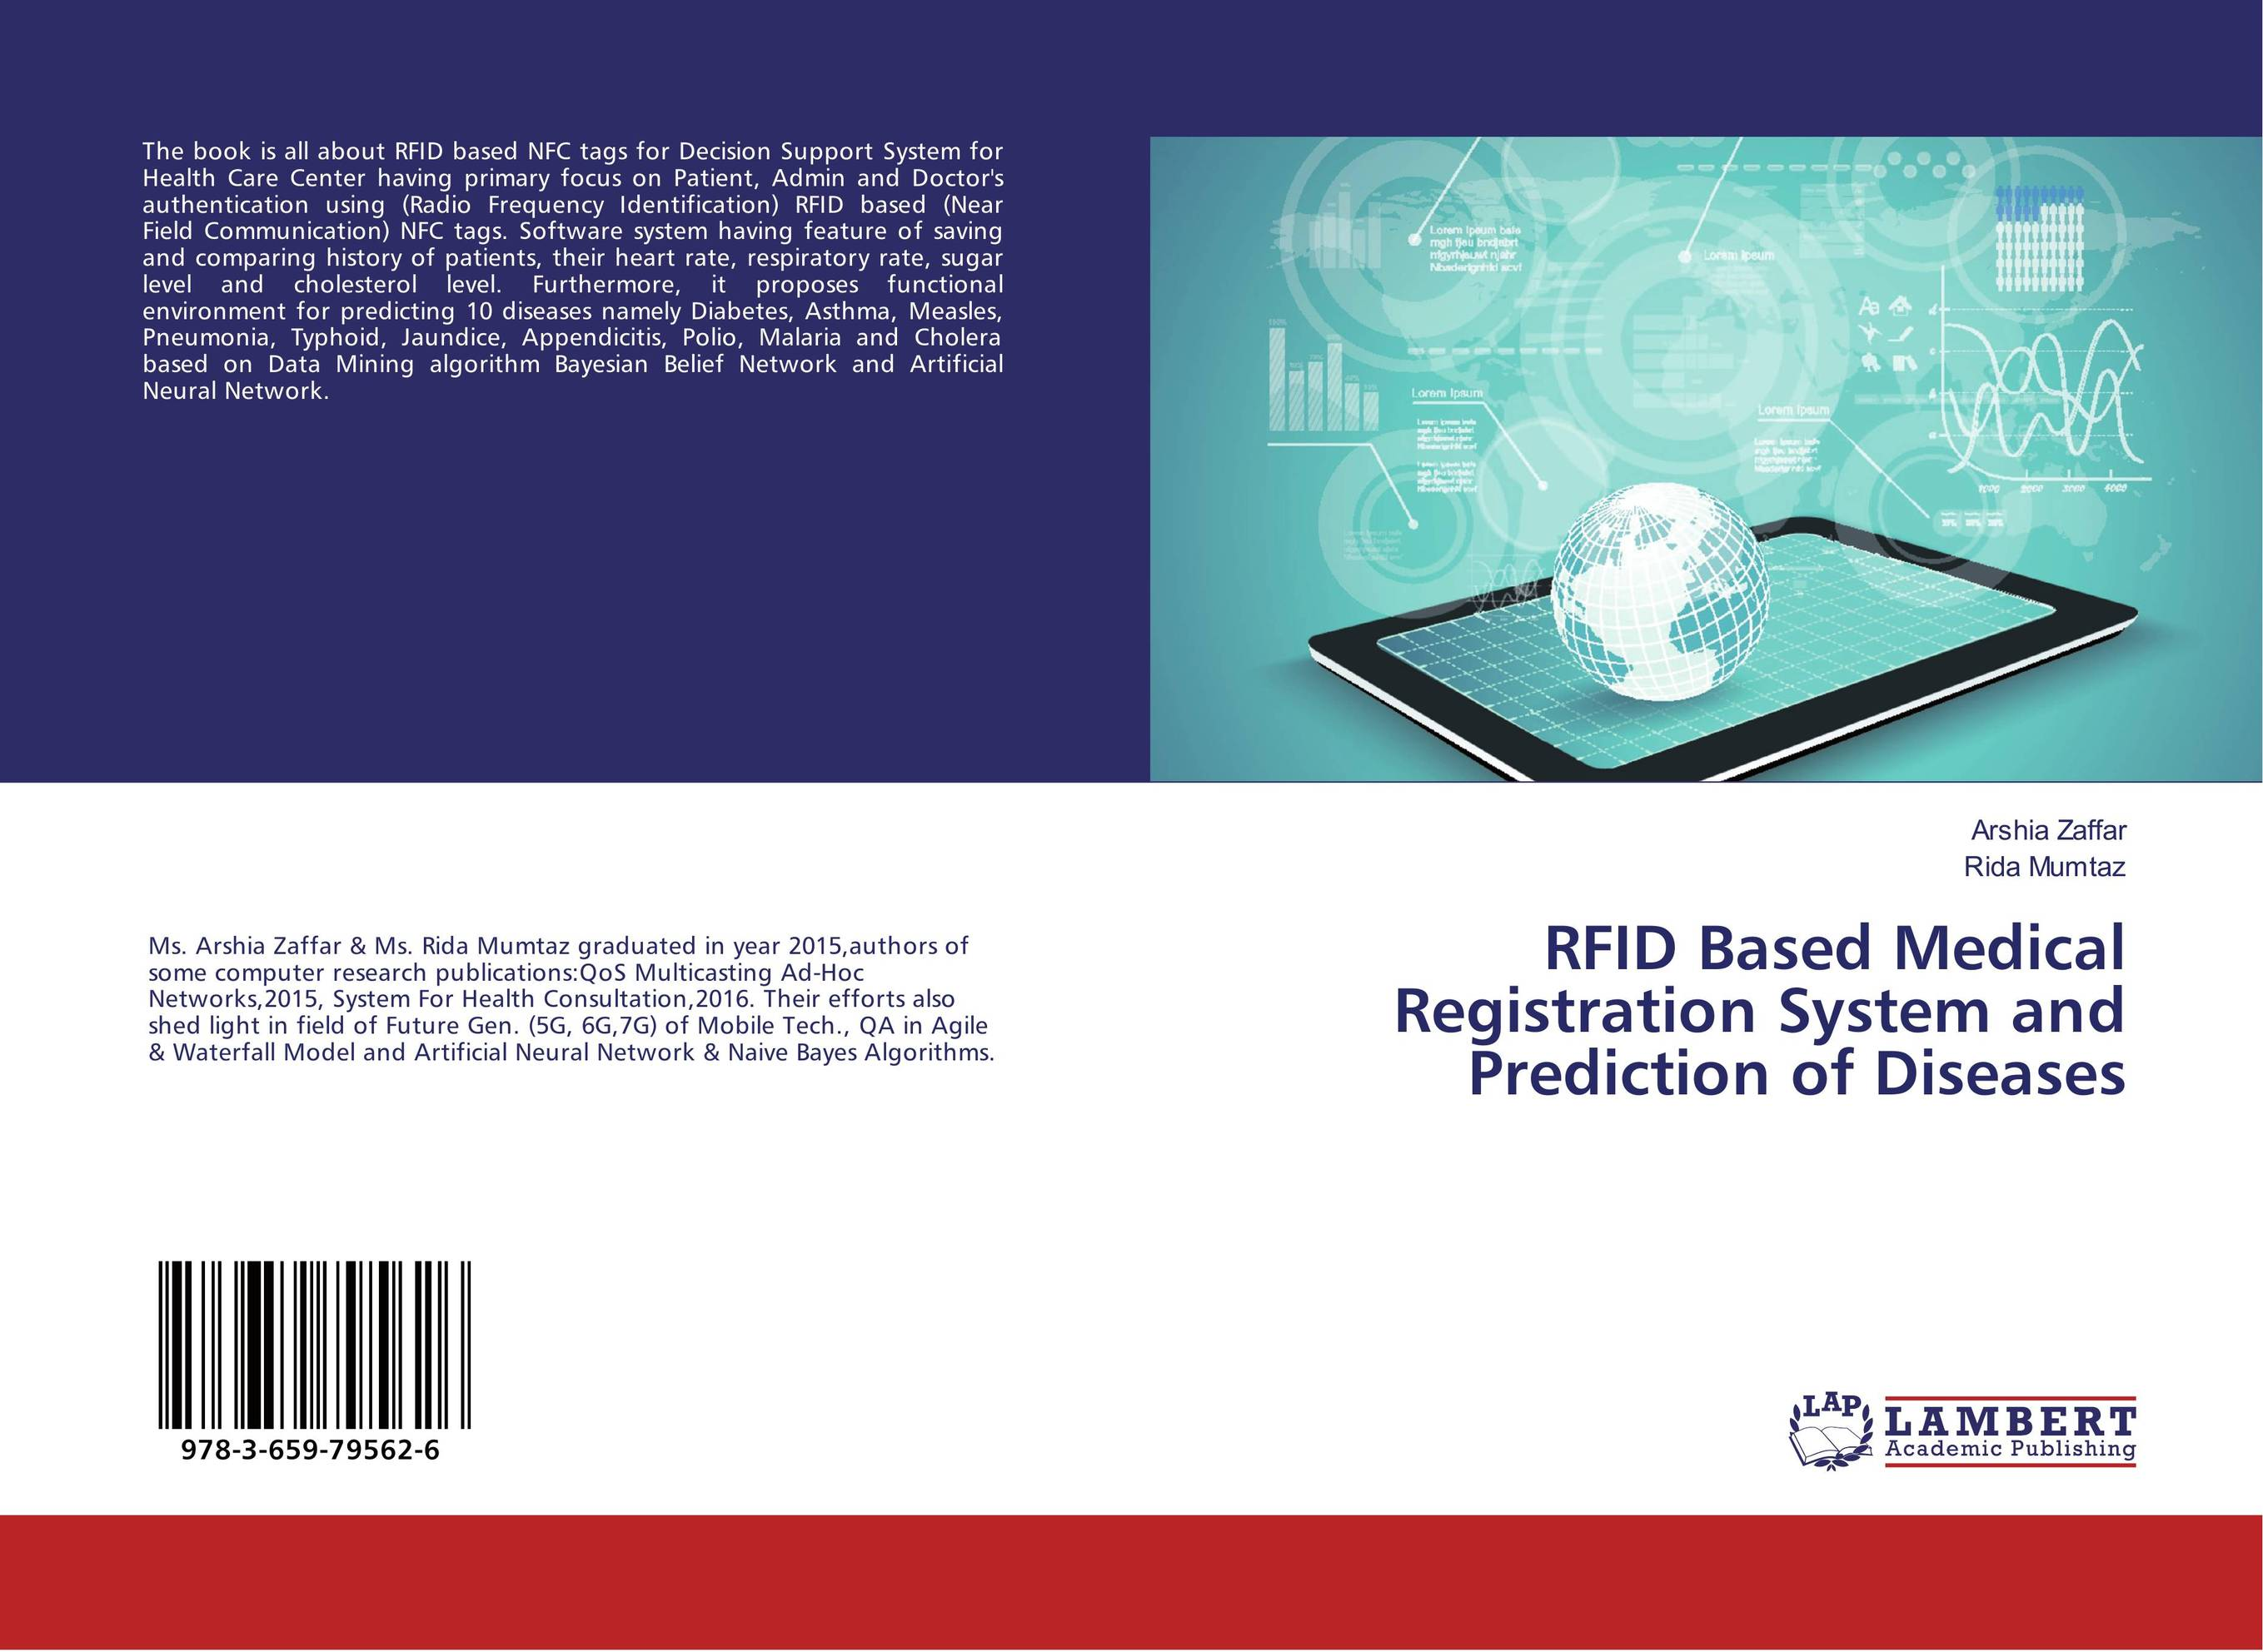 RFID Based Medical Registration System and Prediction of Diseases admin